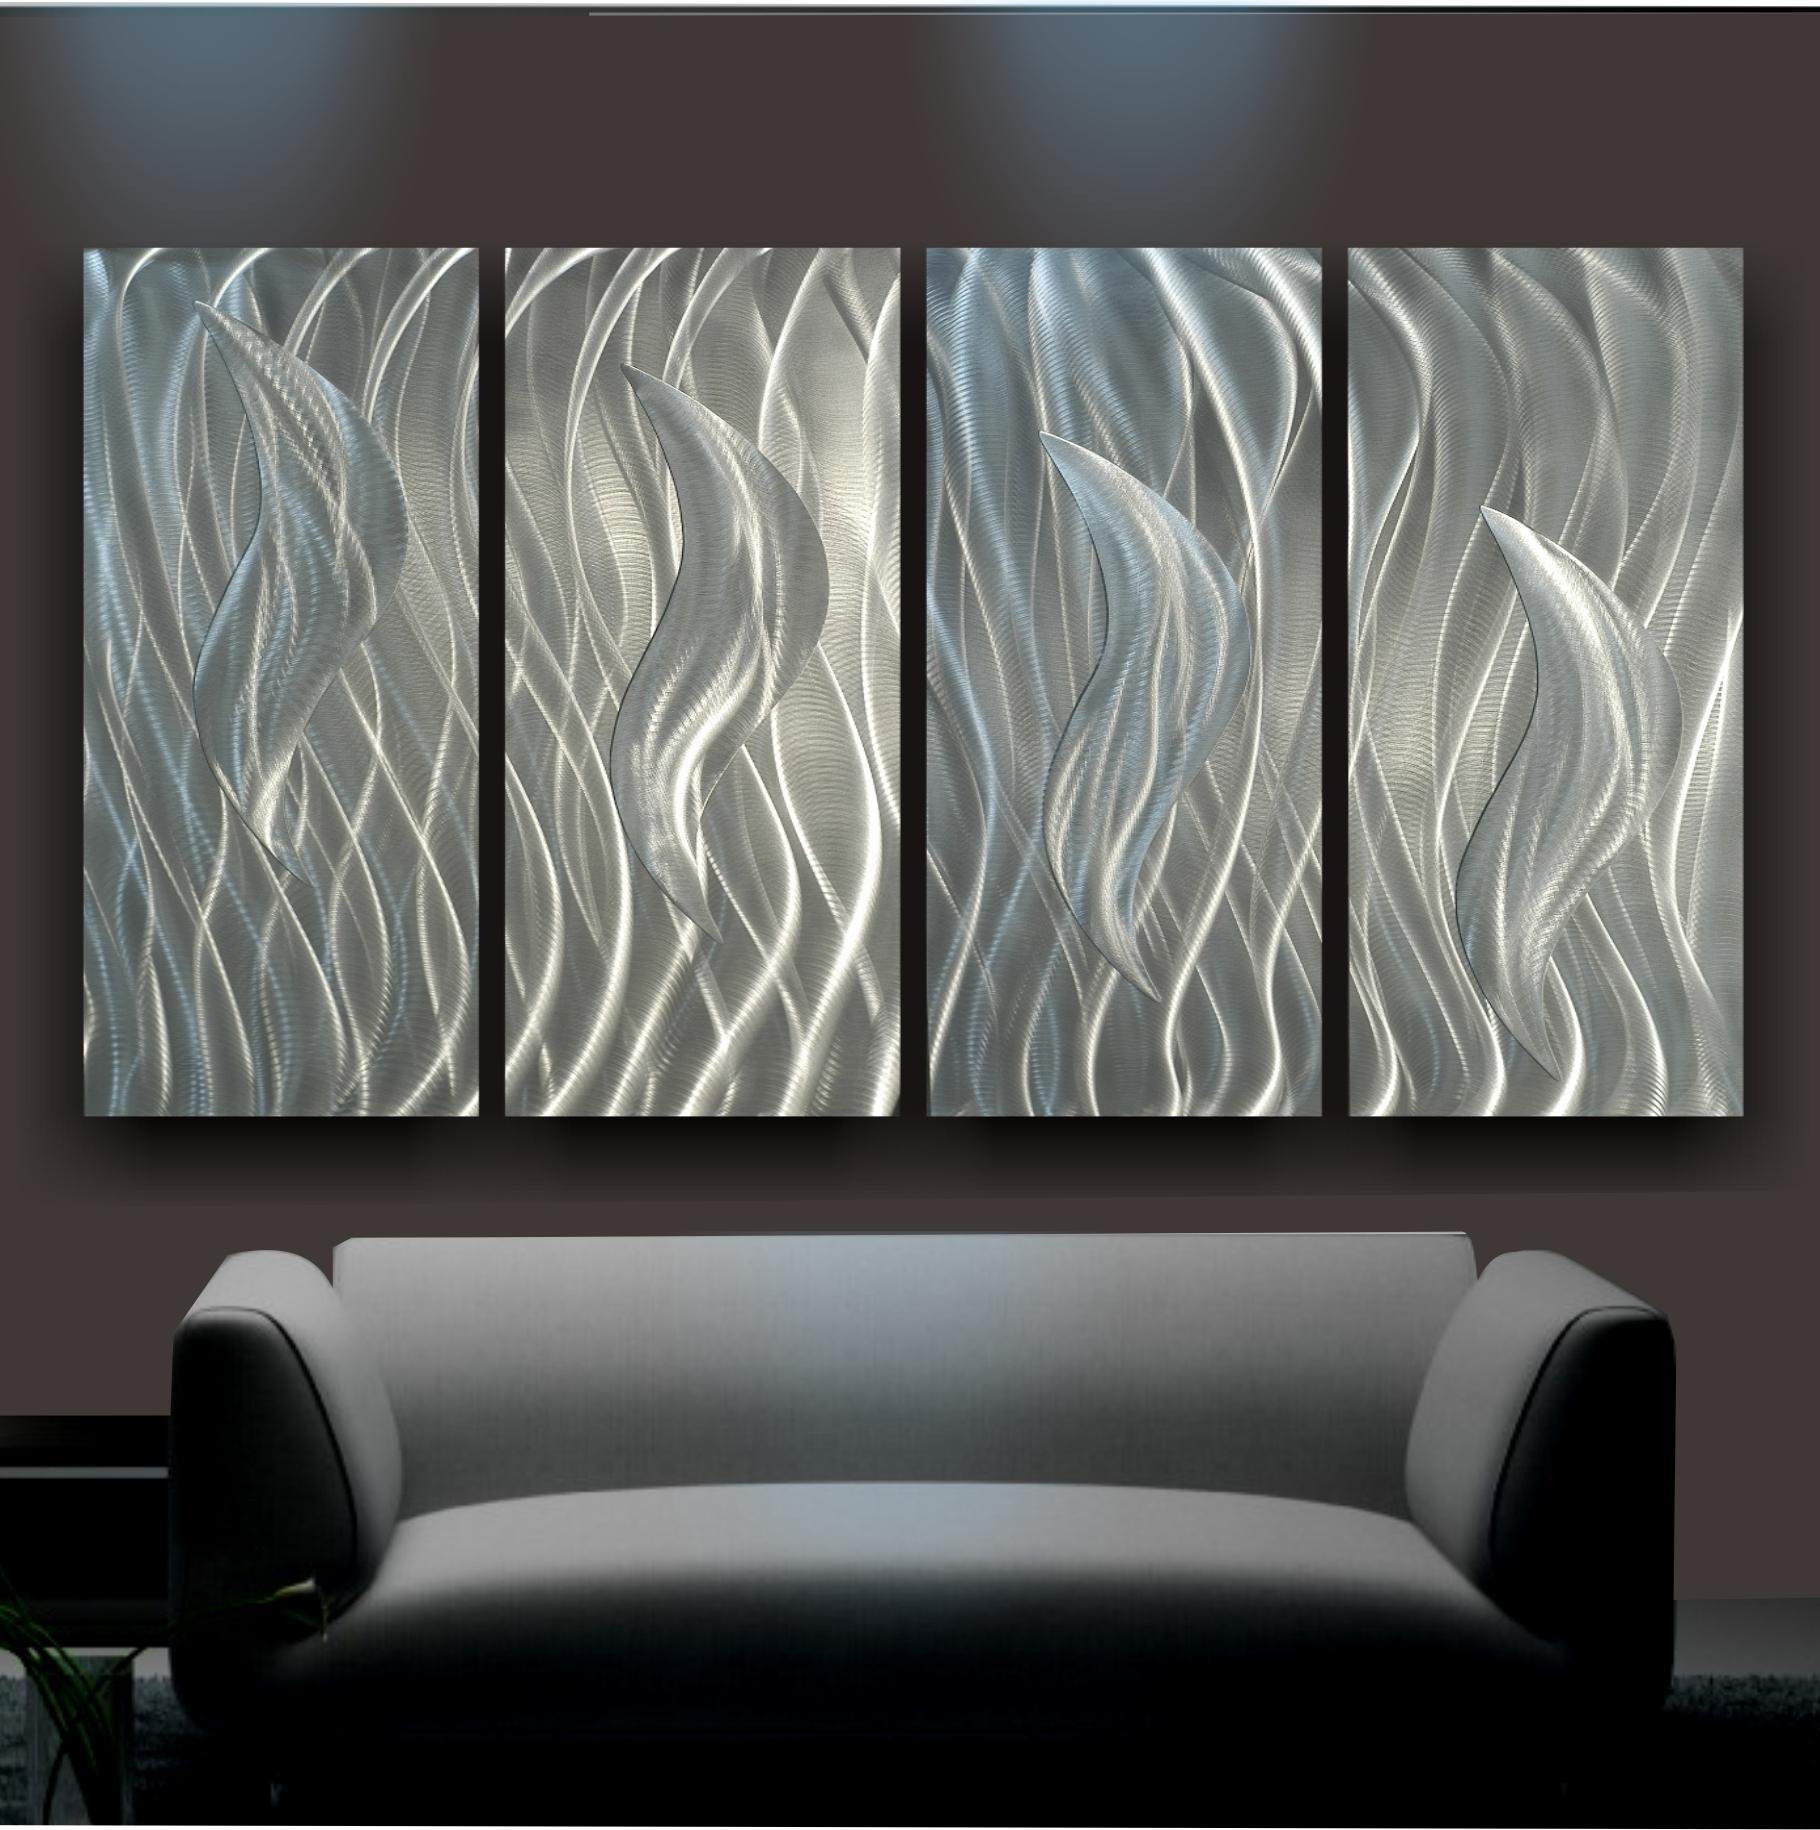 Home Decor Websites For Cheap: 20 Top Inexpensive Metal Wall Art